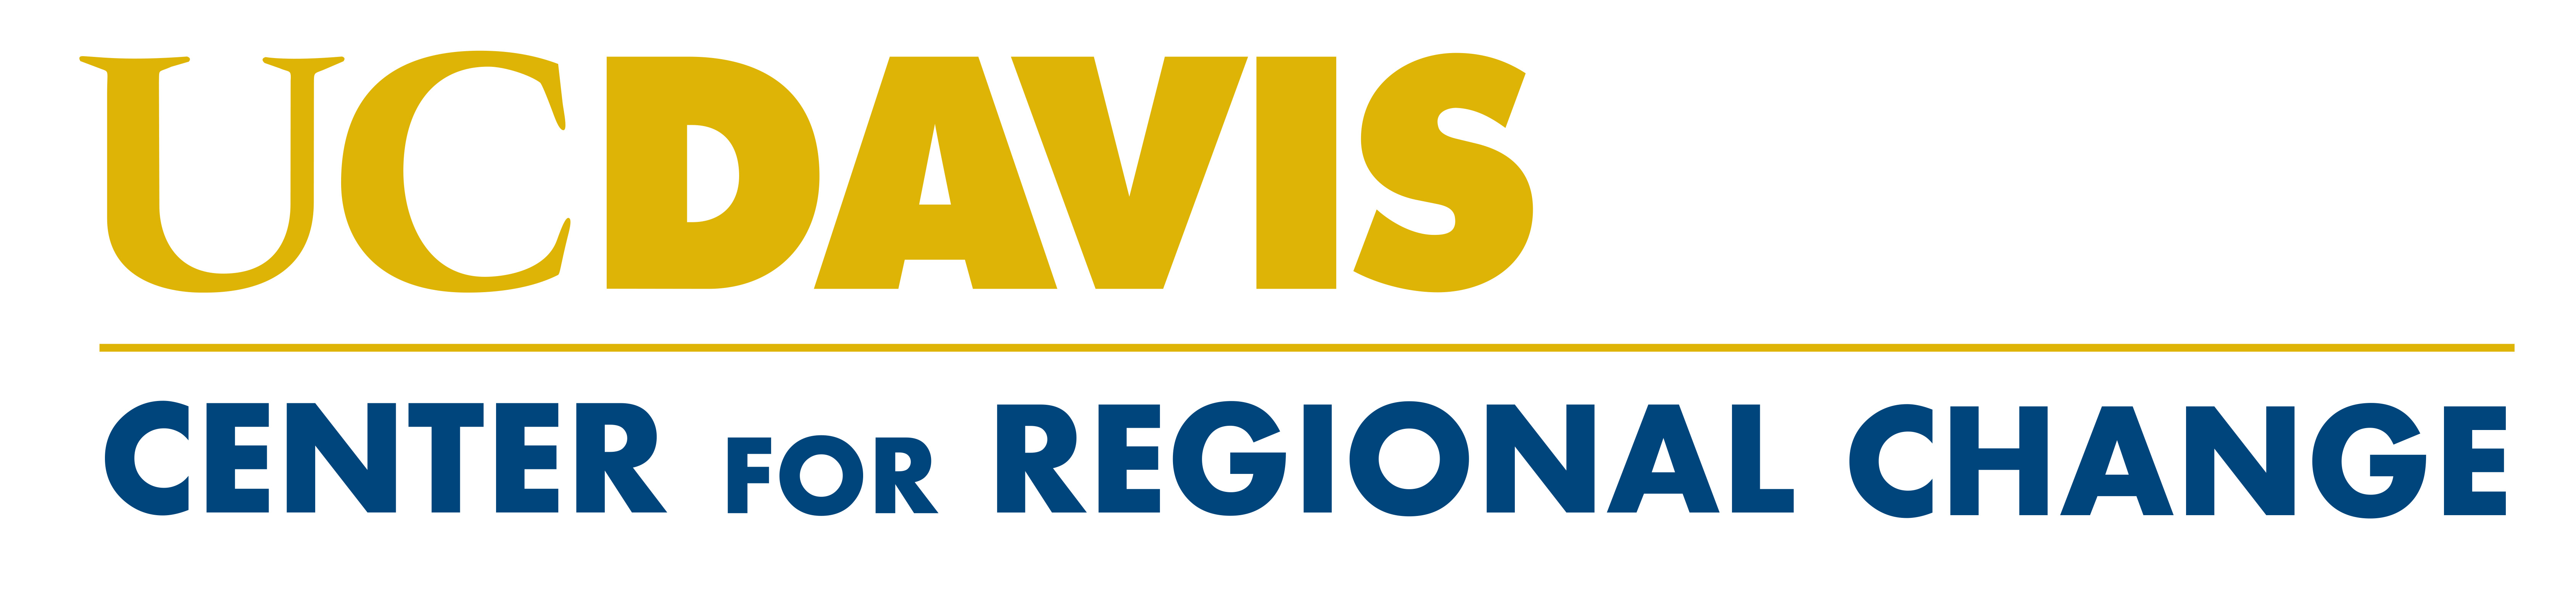 UC Davis Center for Regional Change